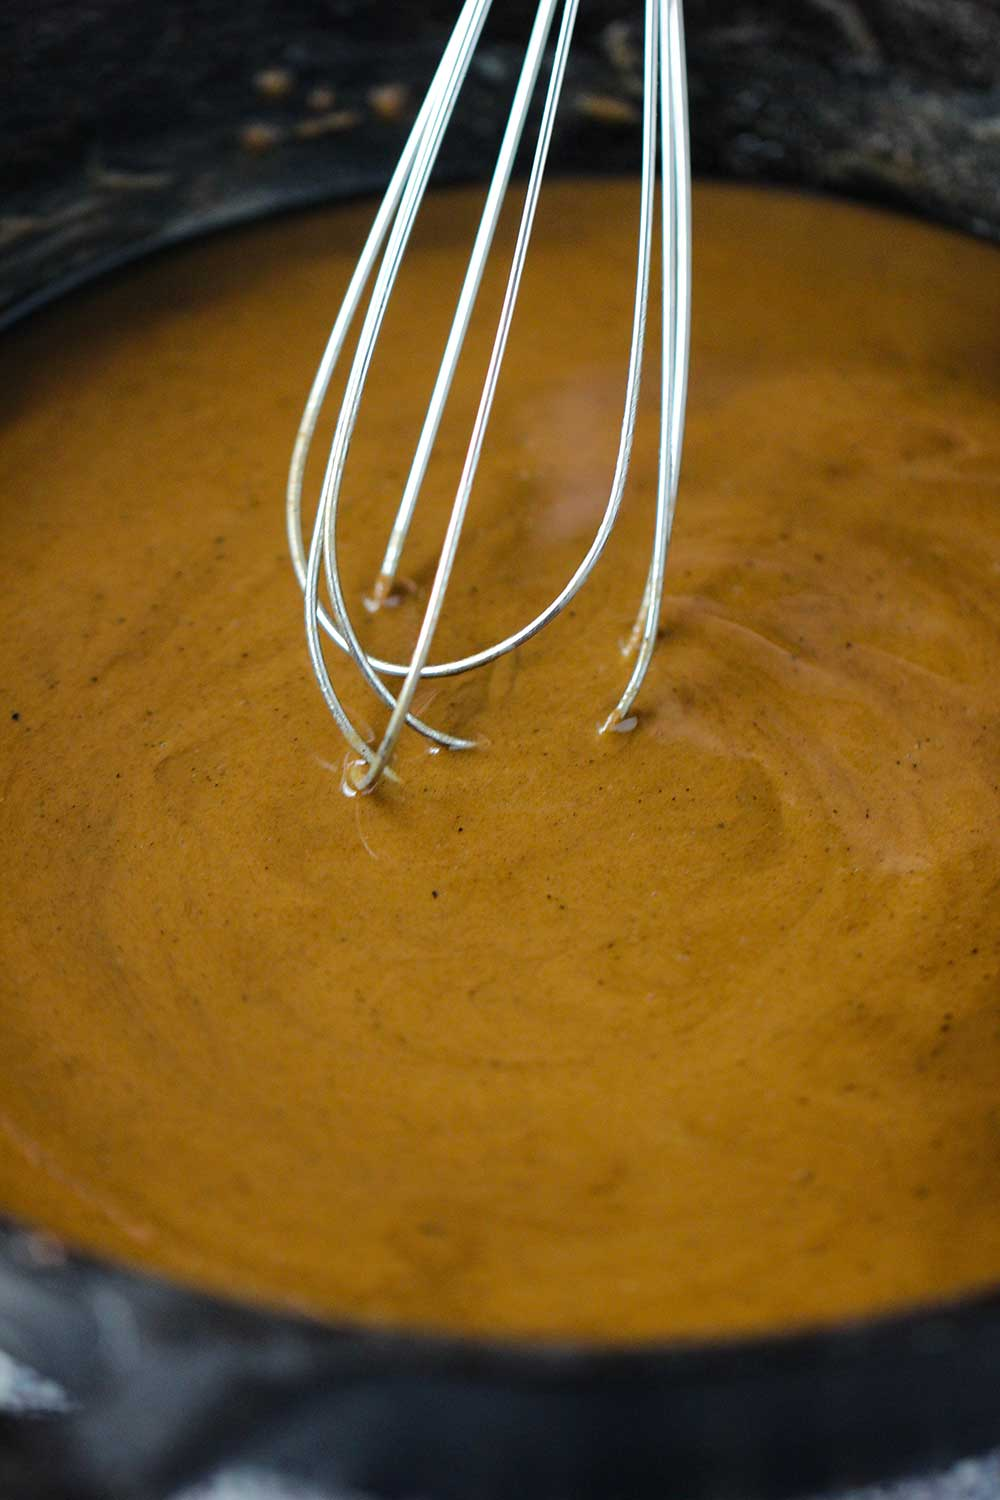 A brown roux being stirred with a whisk in a black cast-iron skillet.